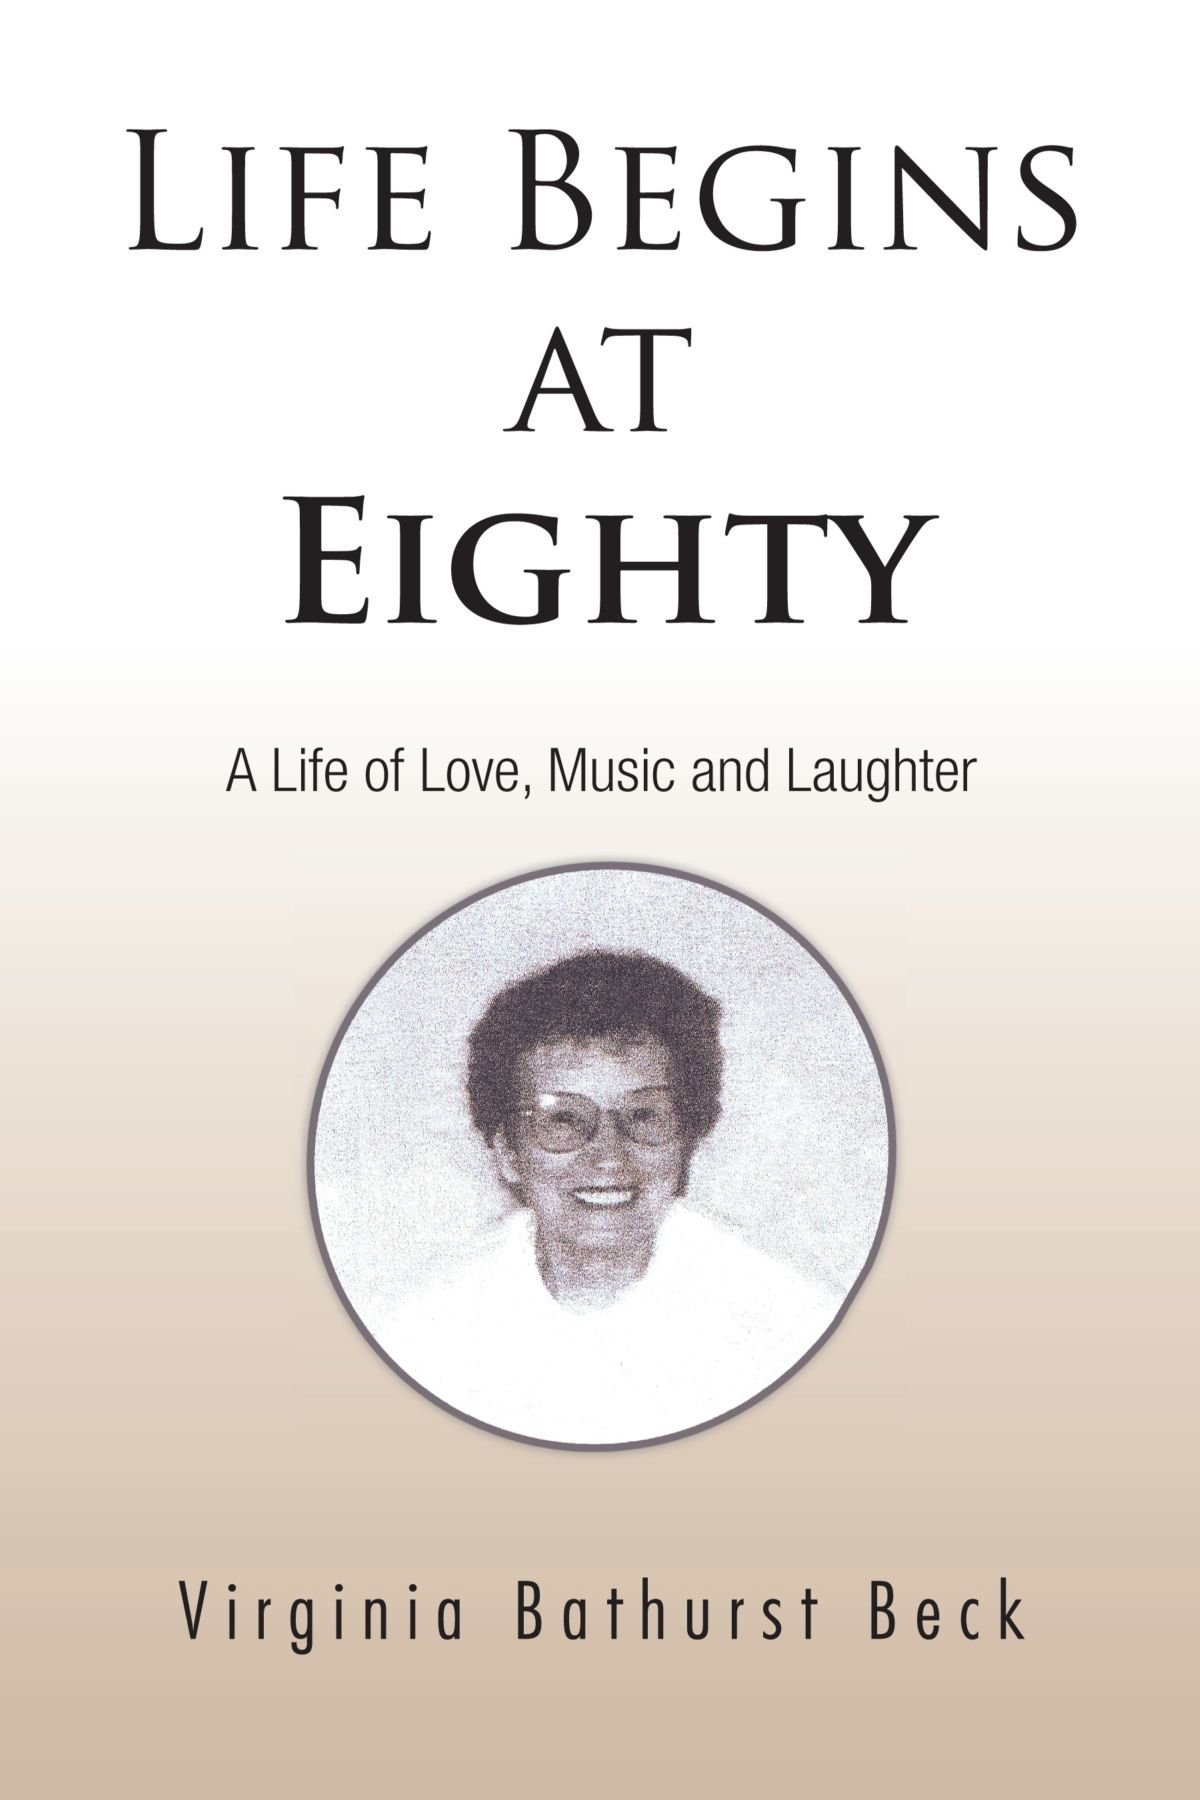 Download Life Begins at Eighty: A Life Of Love, Music and Laughter PDF ePub ebook